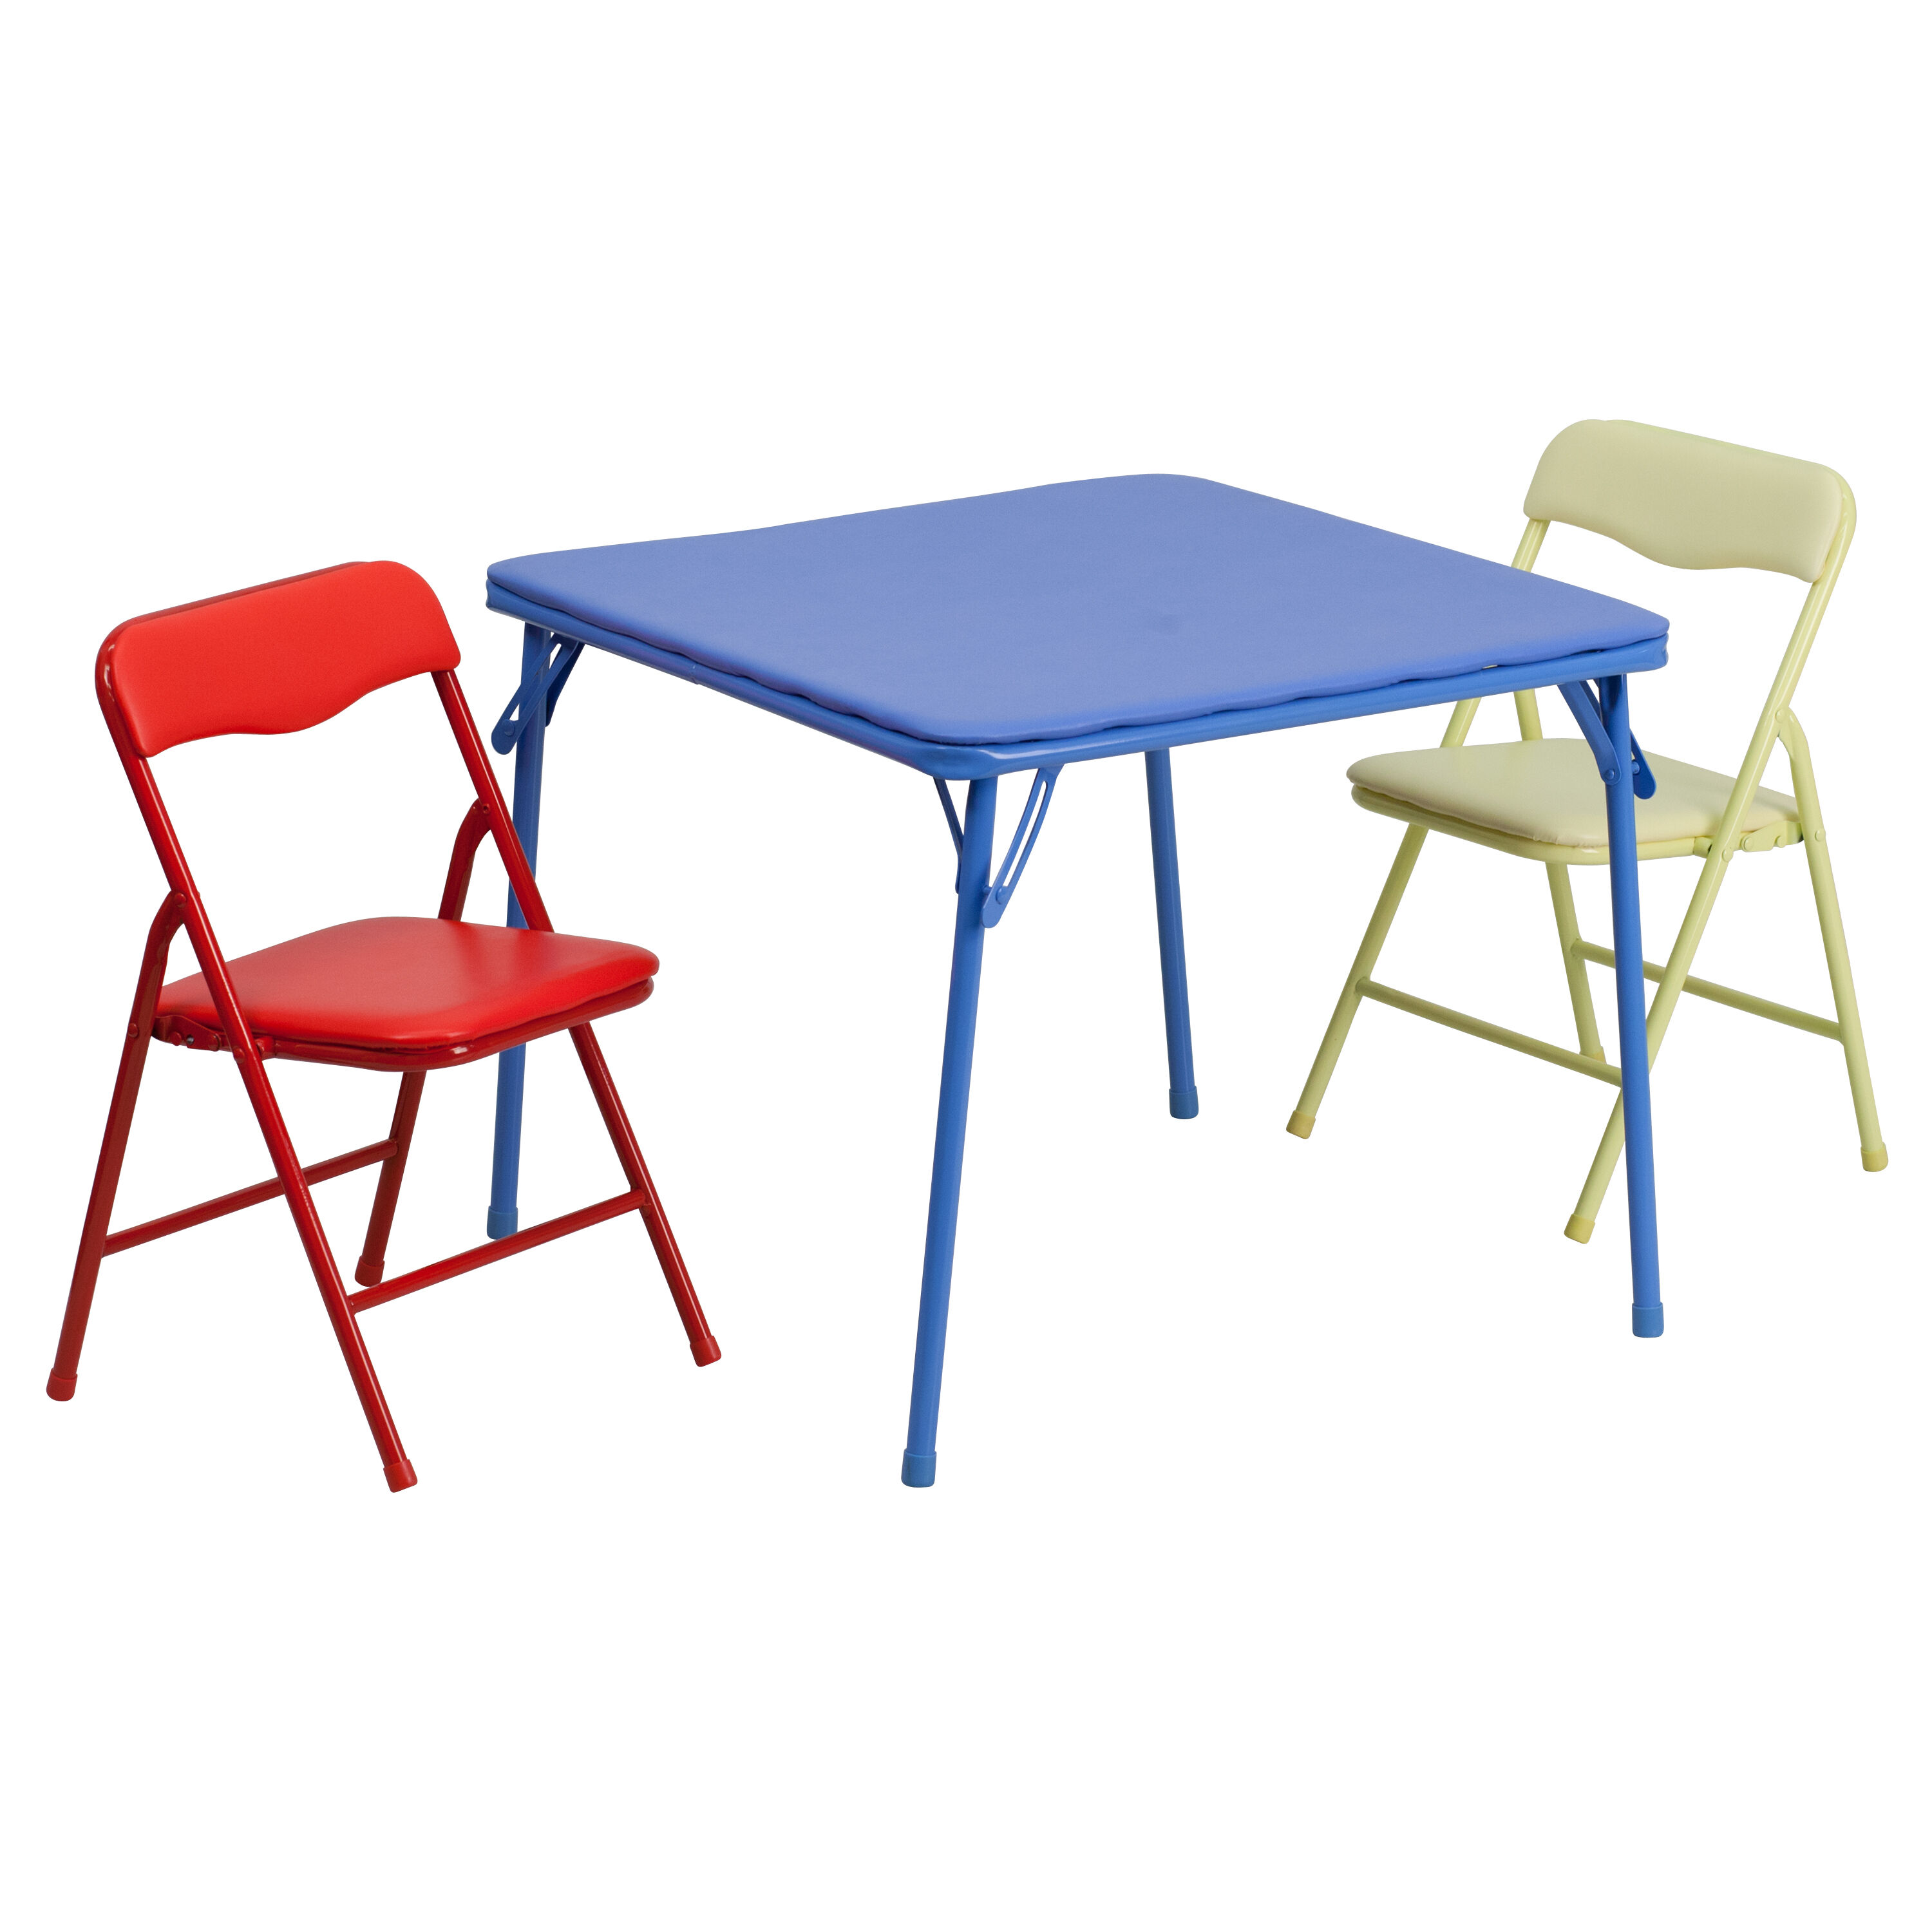 Exceptional ... Our Kids Colorful 3 Piece Folding Table And Chair Set Is On Sale Now.